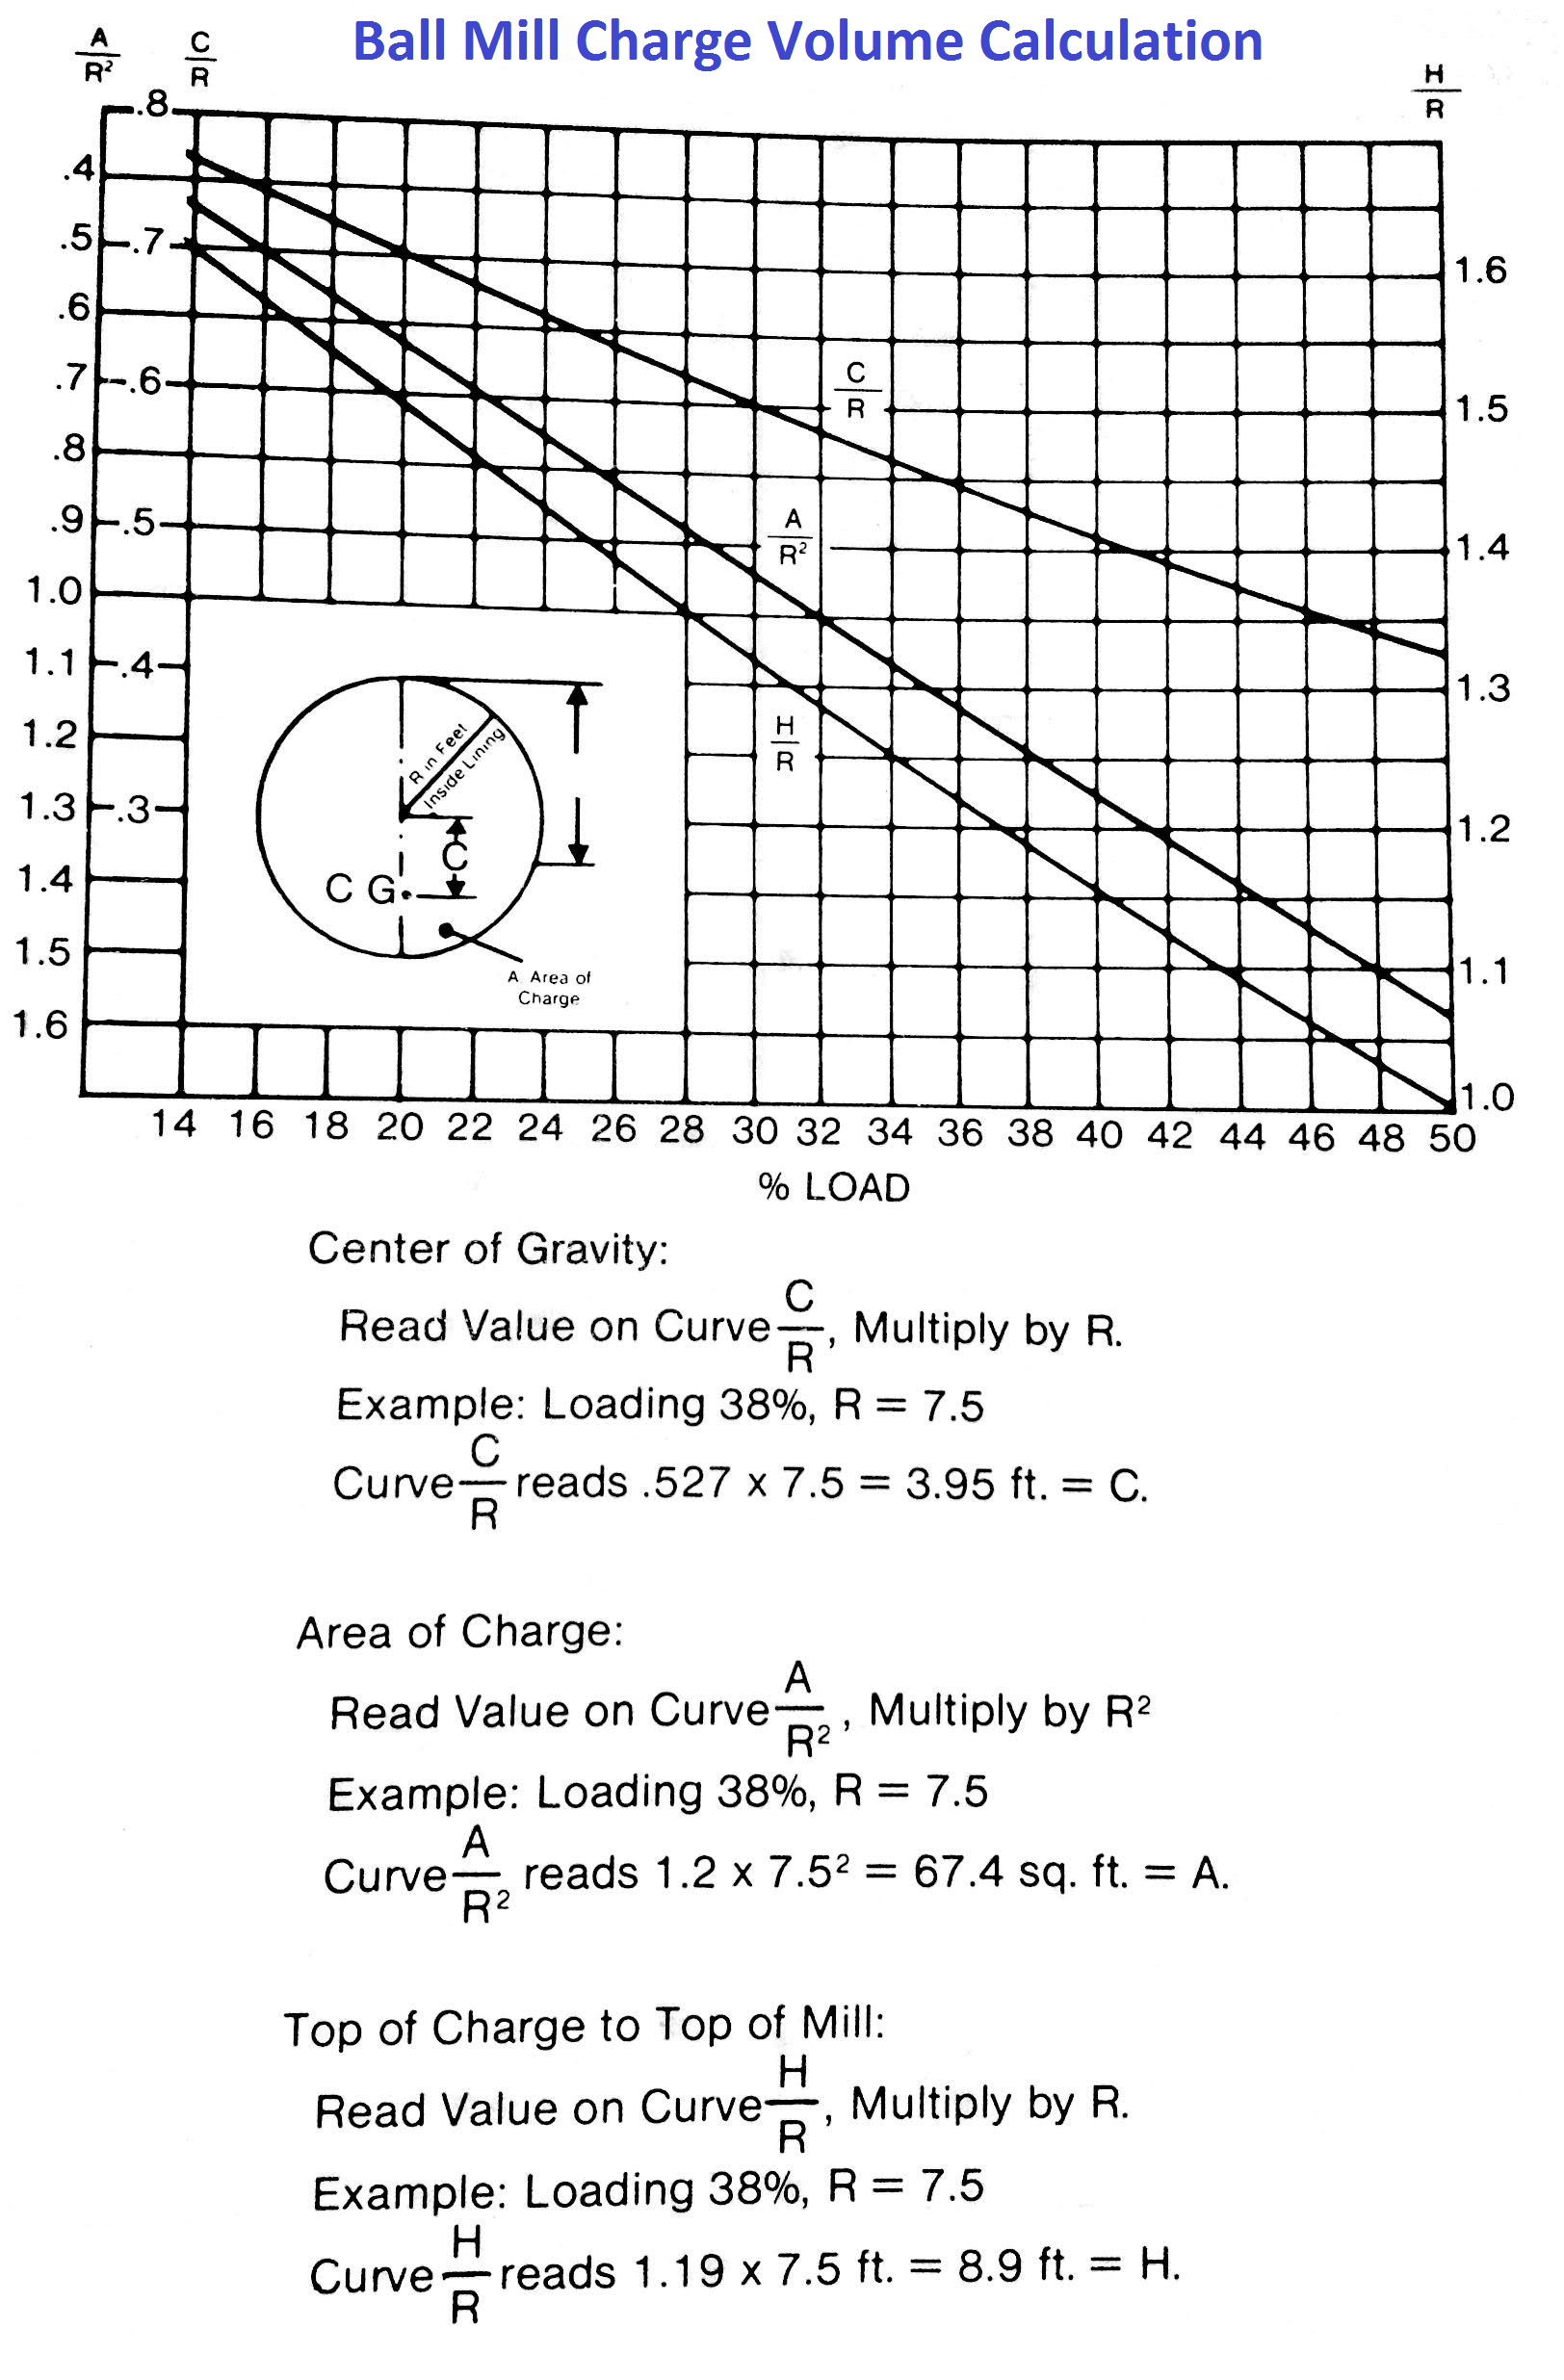 Estimate charge volume of a grinding mill (method 1).